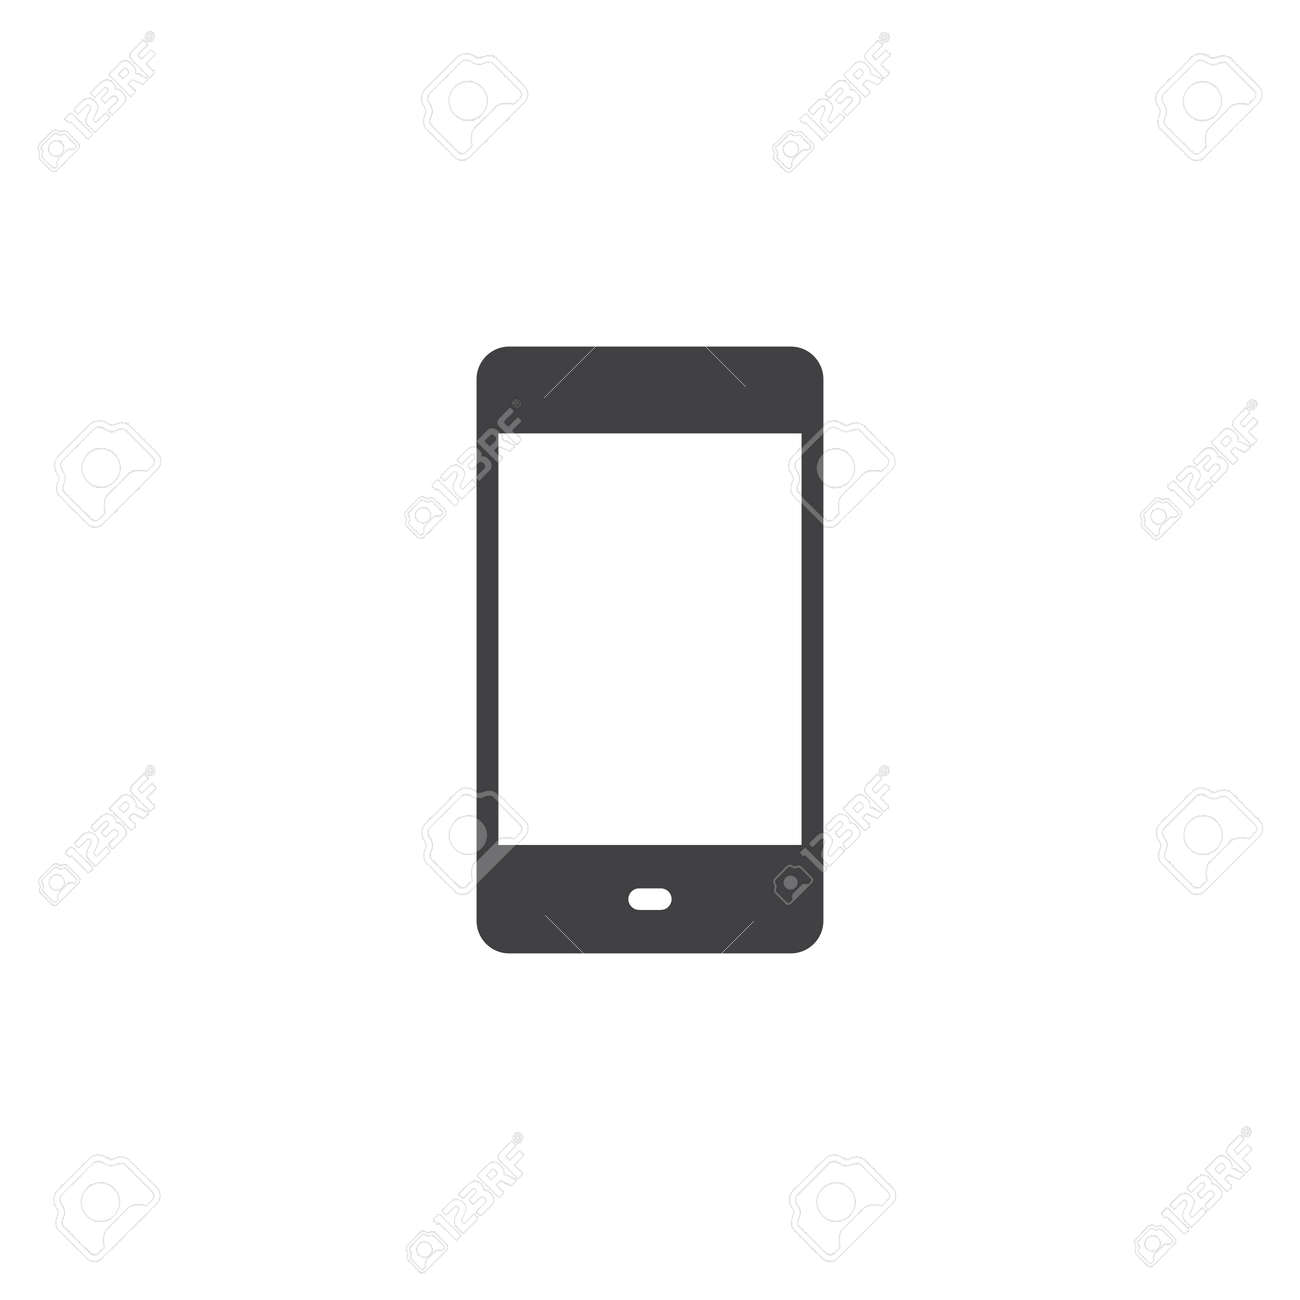 Mobile phone vector icon  filled flat sign for mobile concept